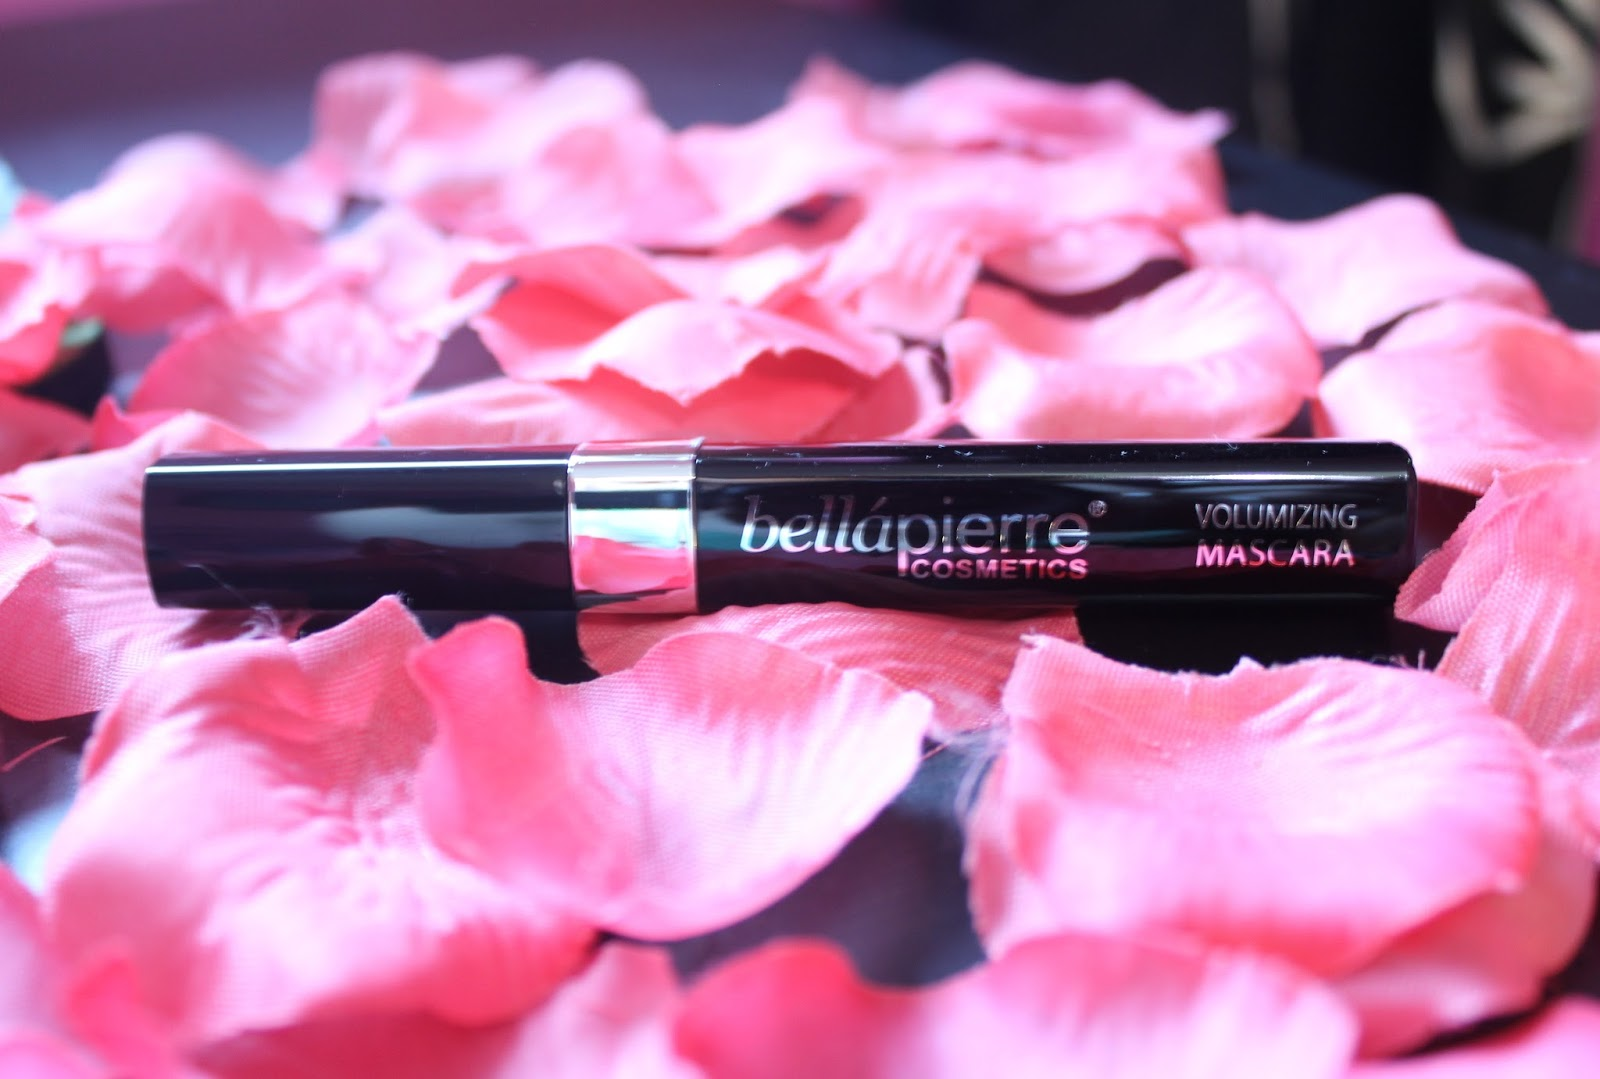 Bellapierre Cosmetics - Volumizing Mascara Black